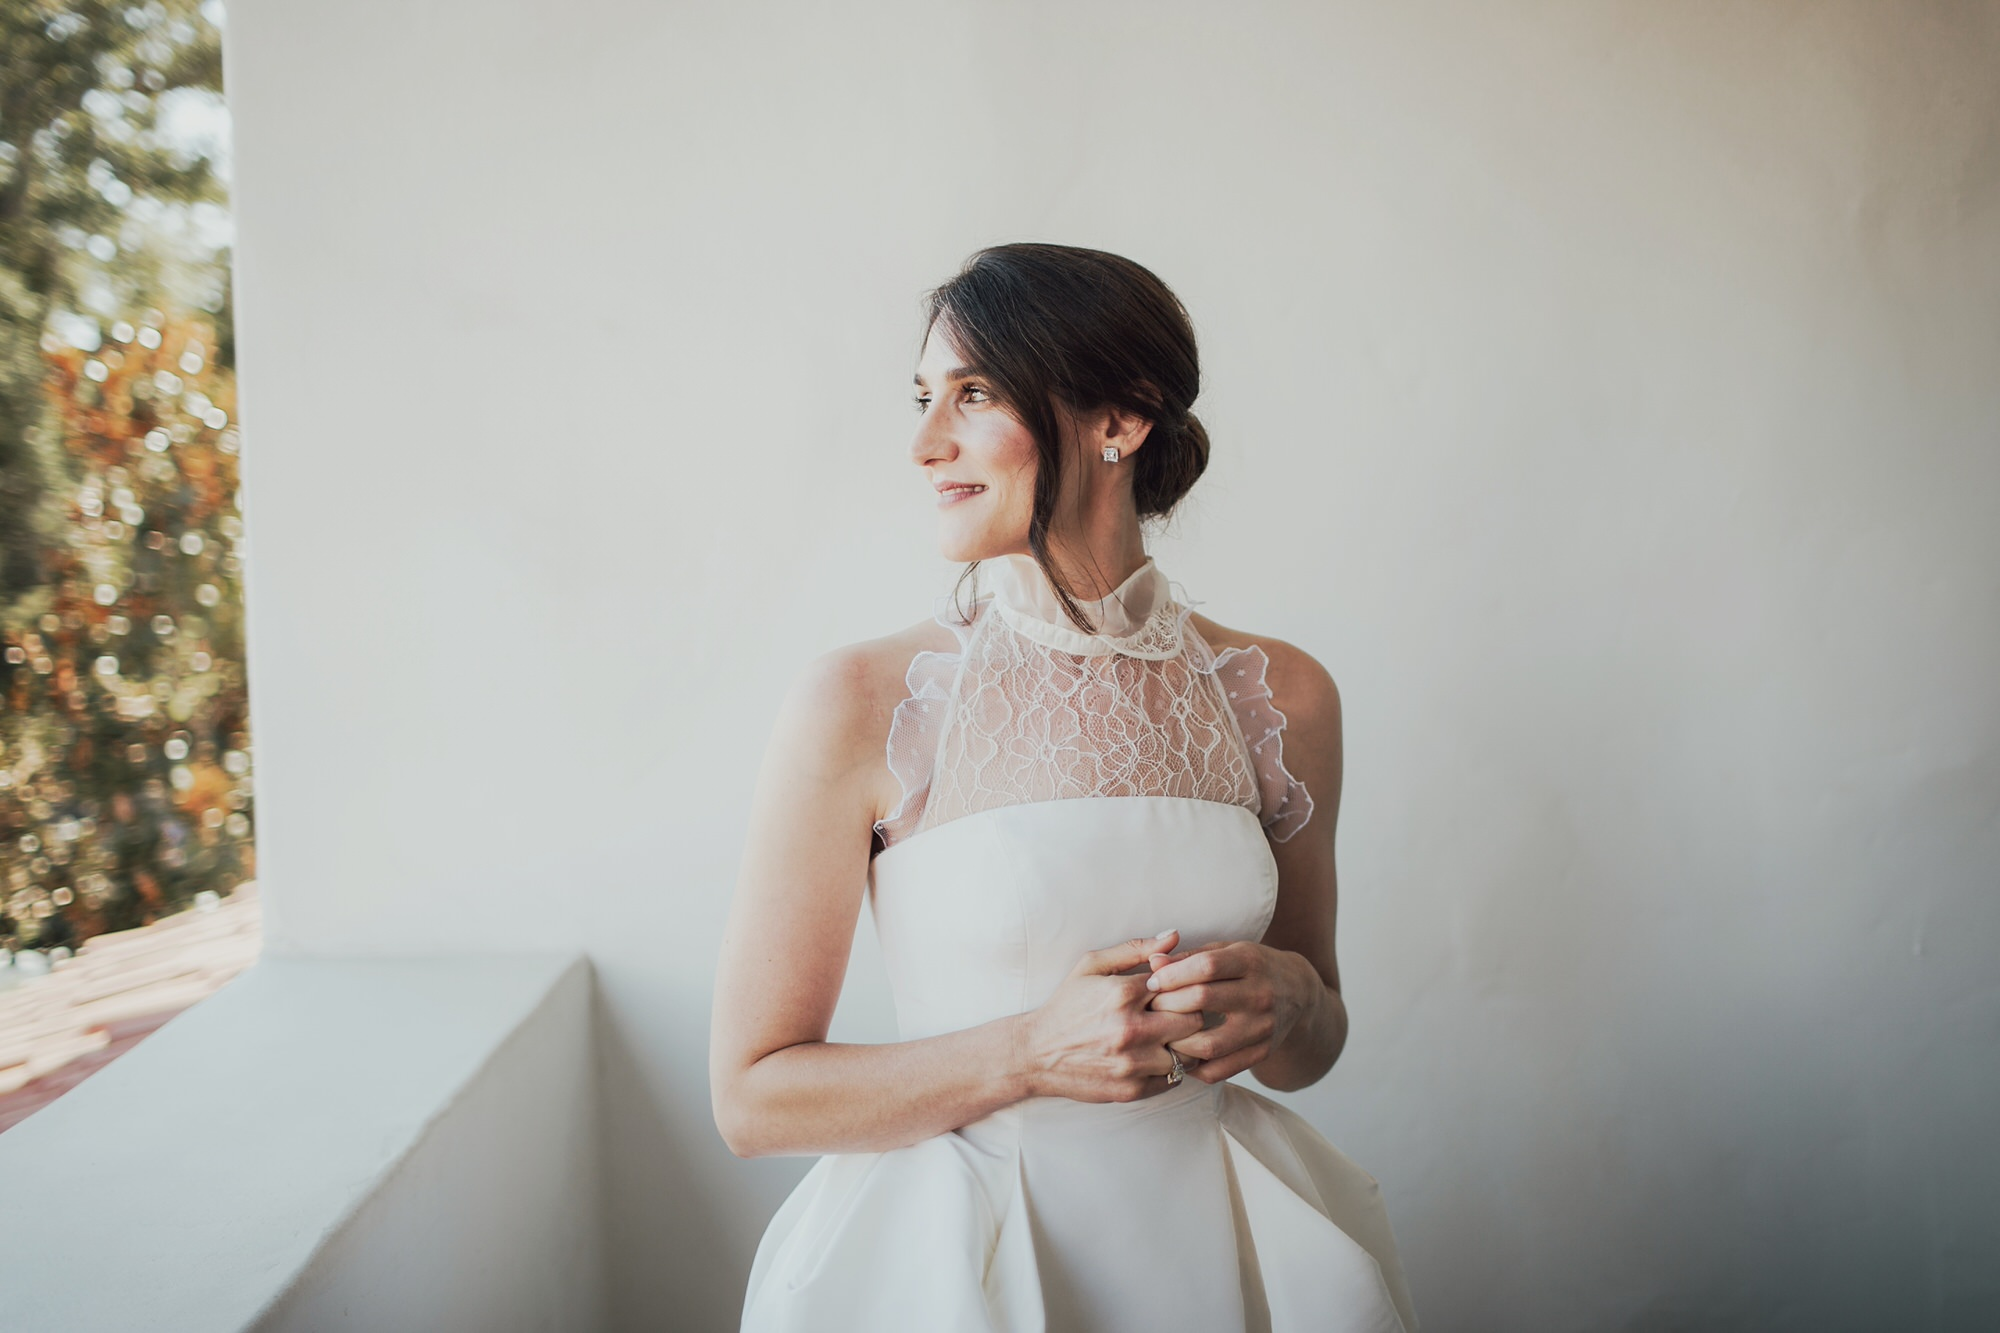 Bridal Portraits at Ojai Valley Inn